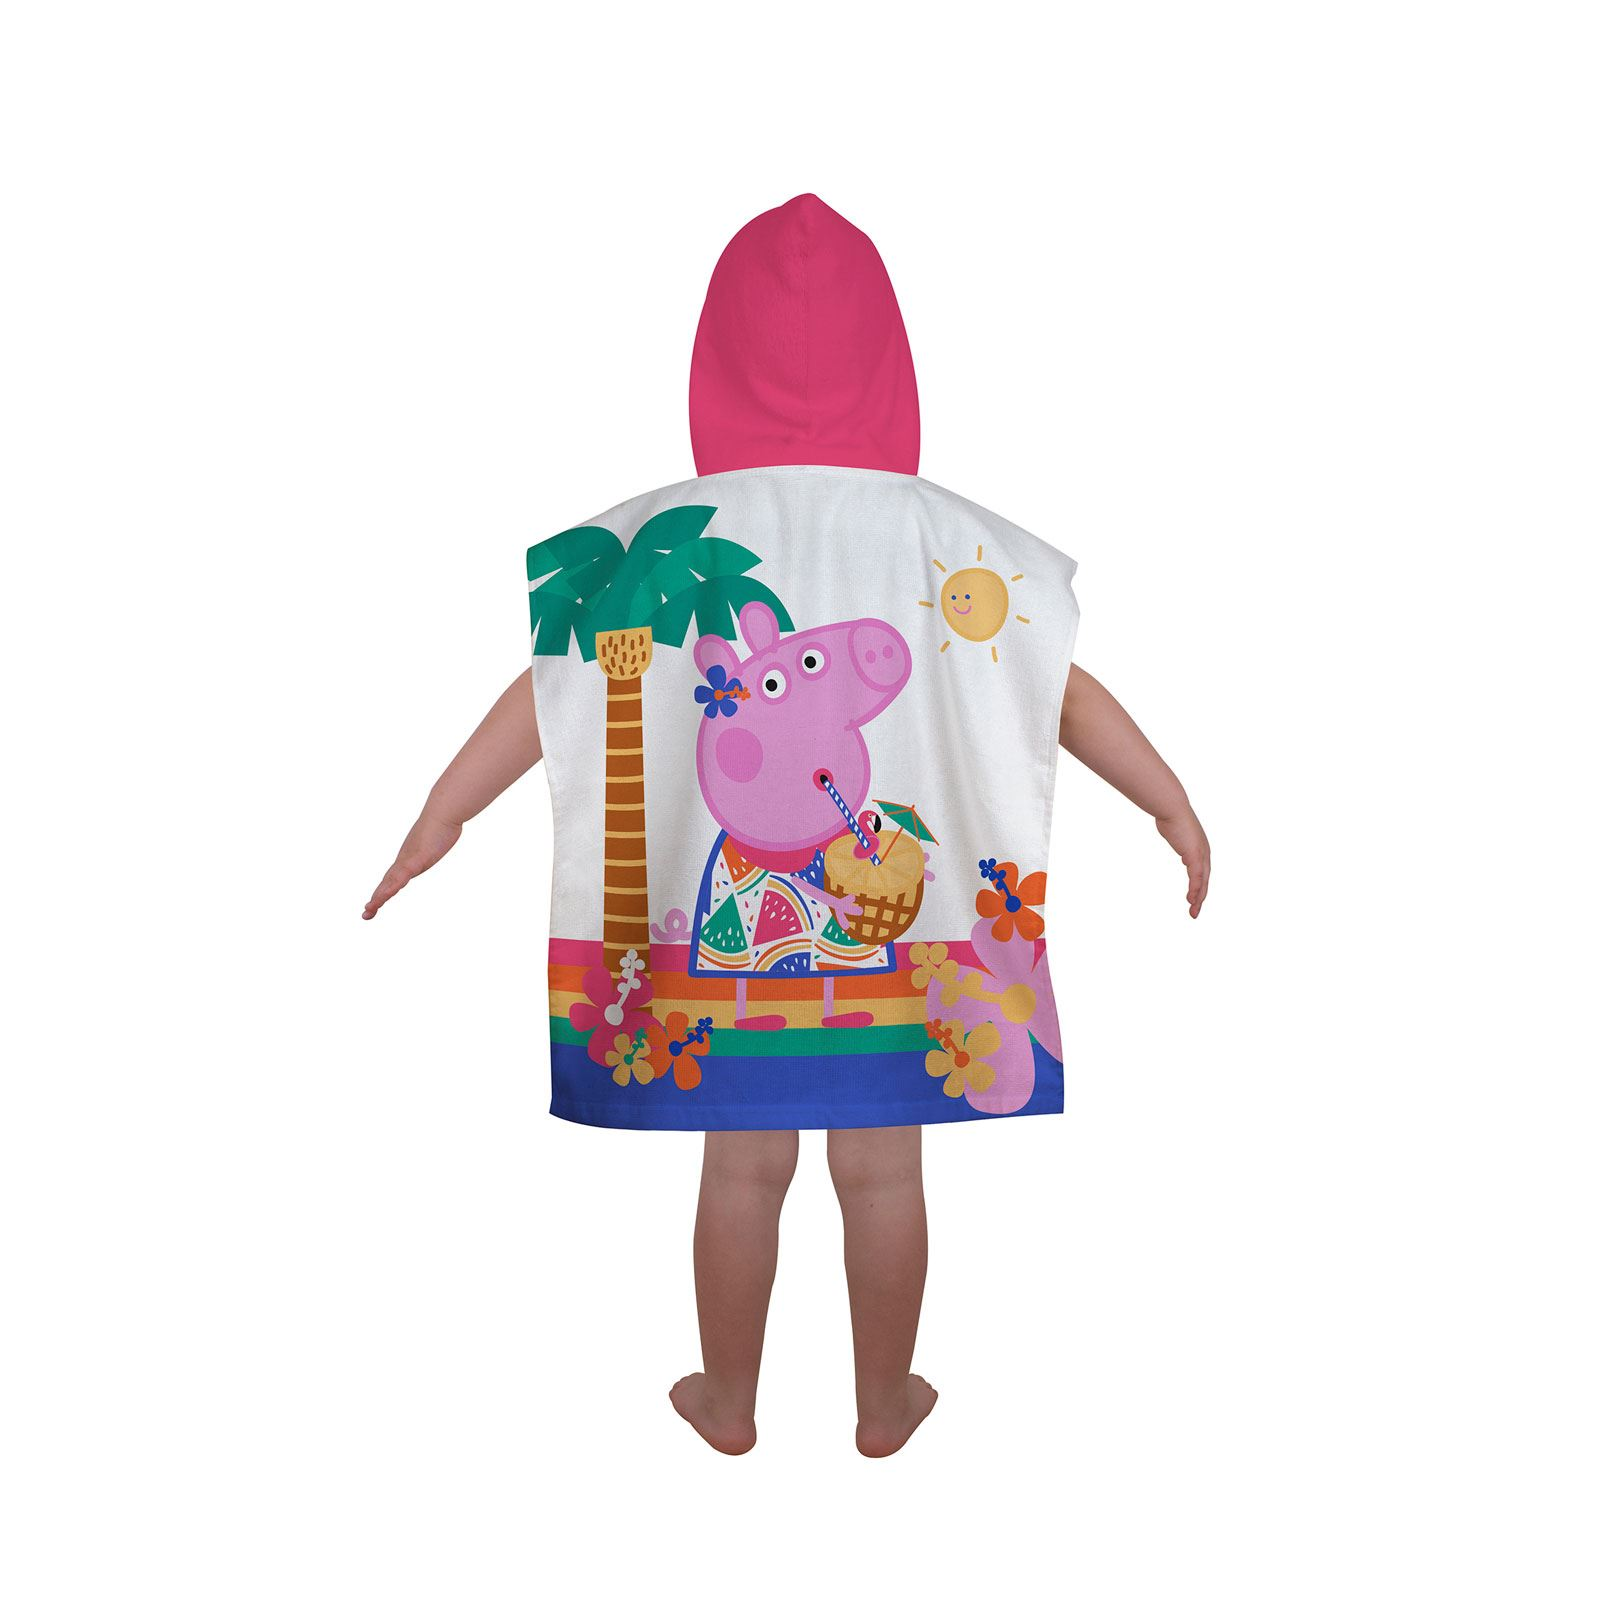 Peppa-Pig-George-100-Cotton-Beach-towels-amp-Hooded-Poncho-Boys-Girls-Kids miniature 5